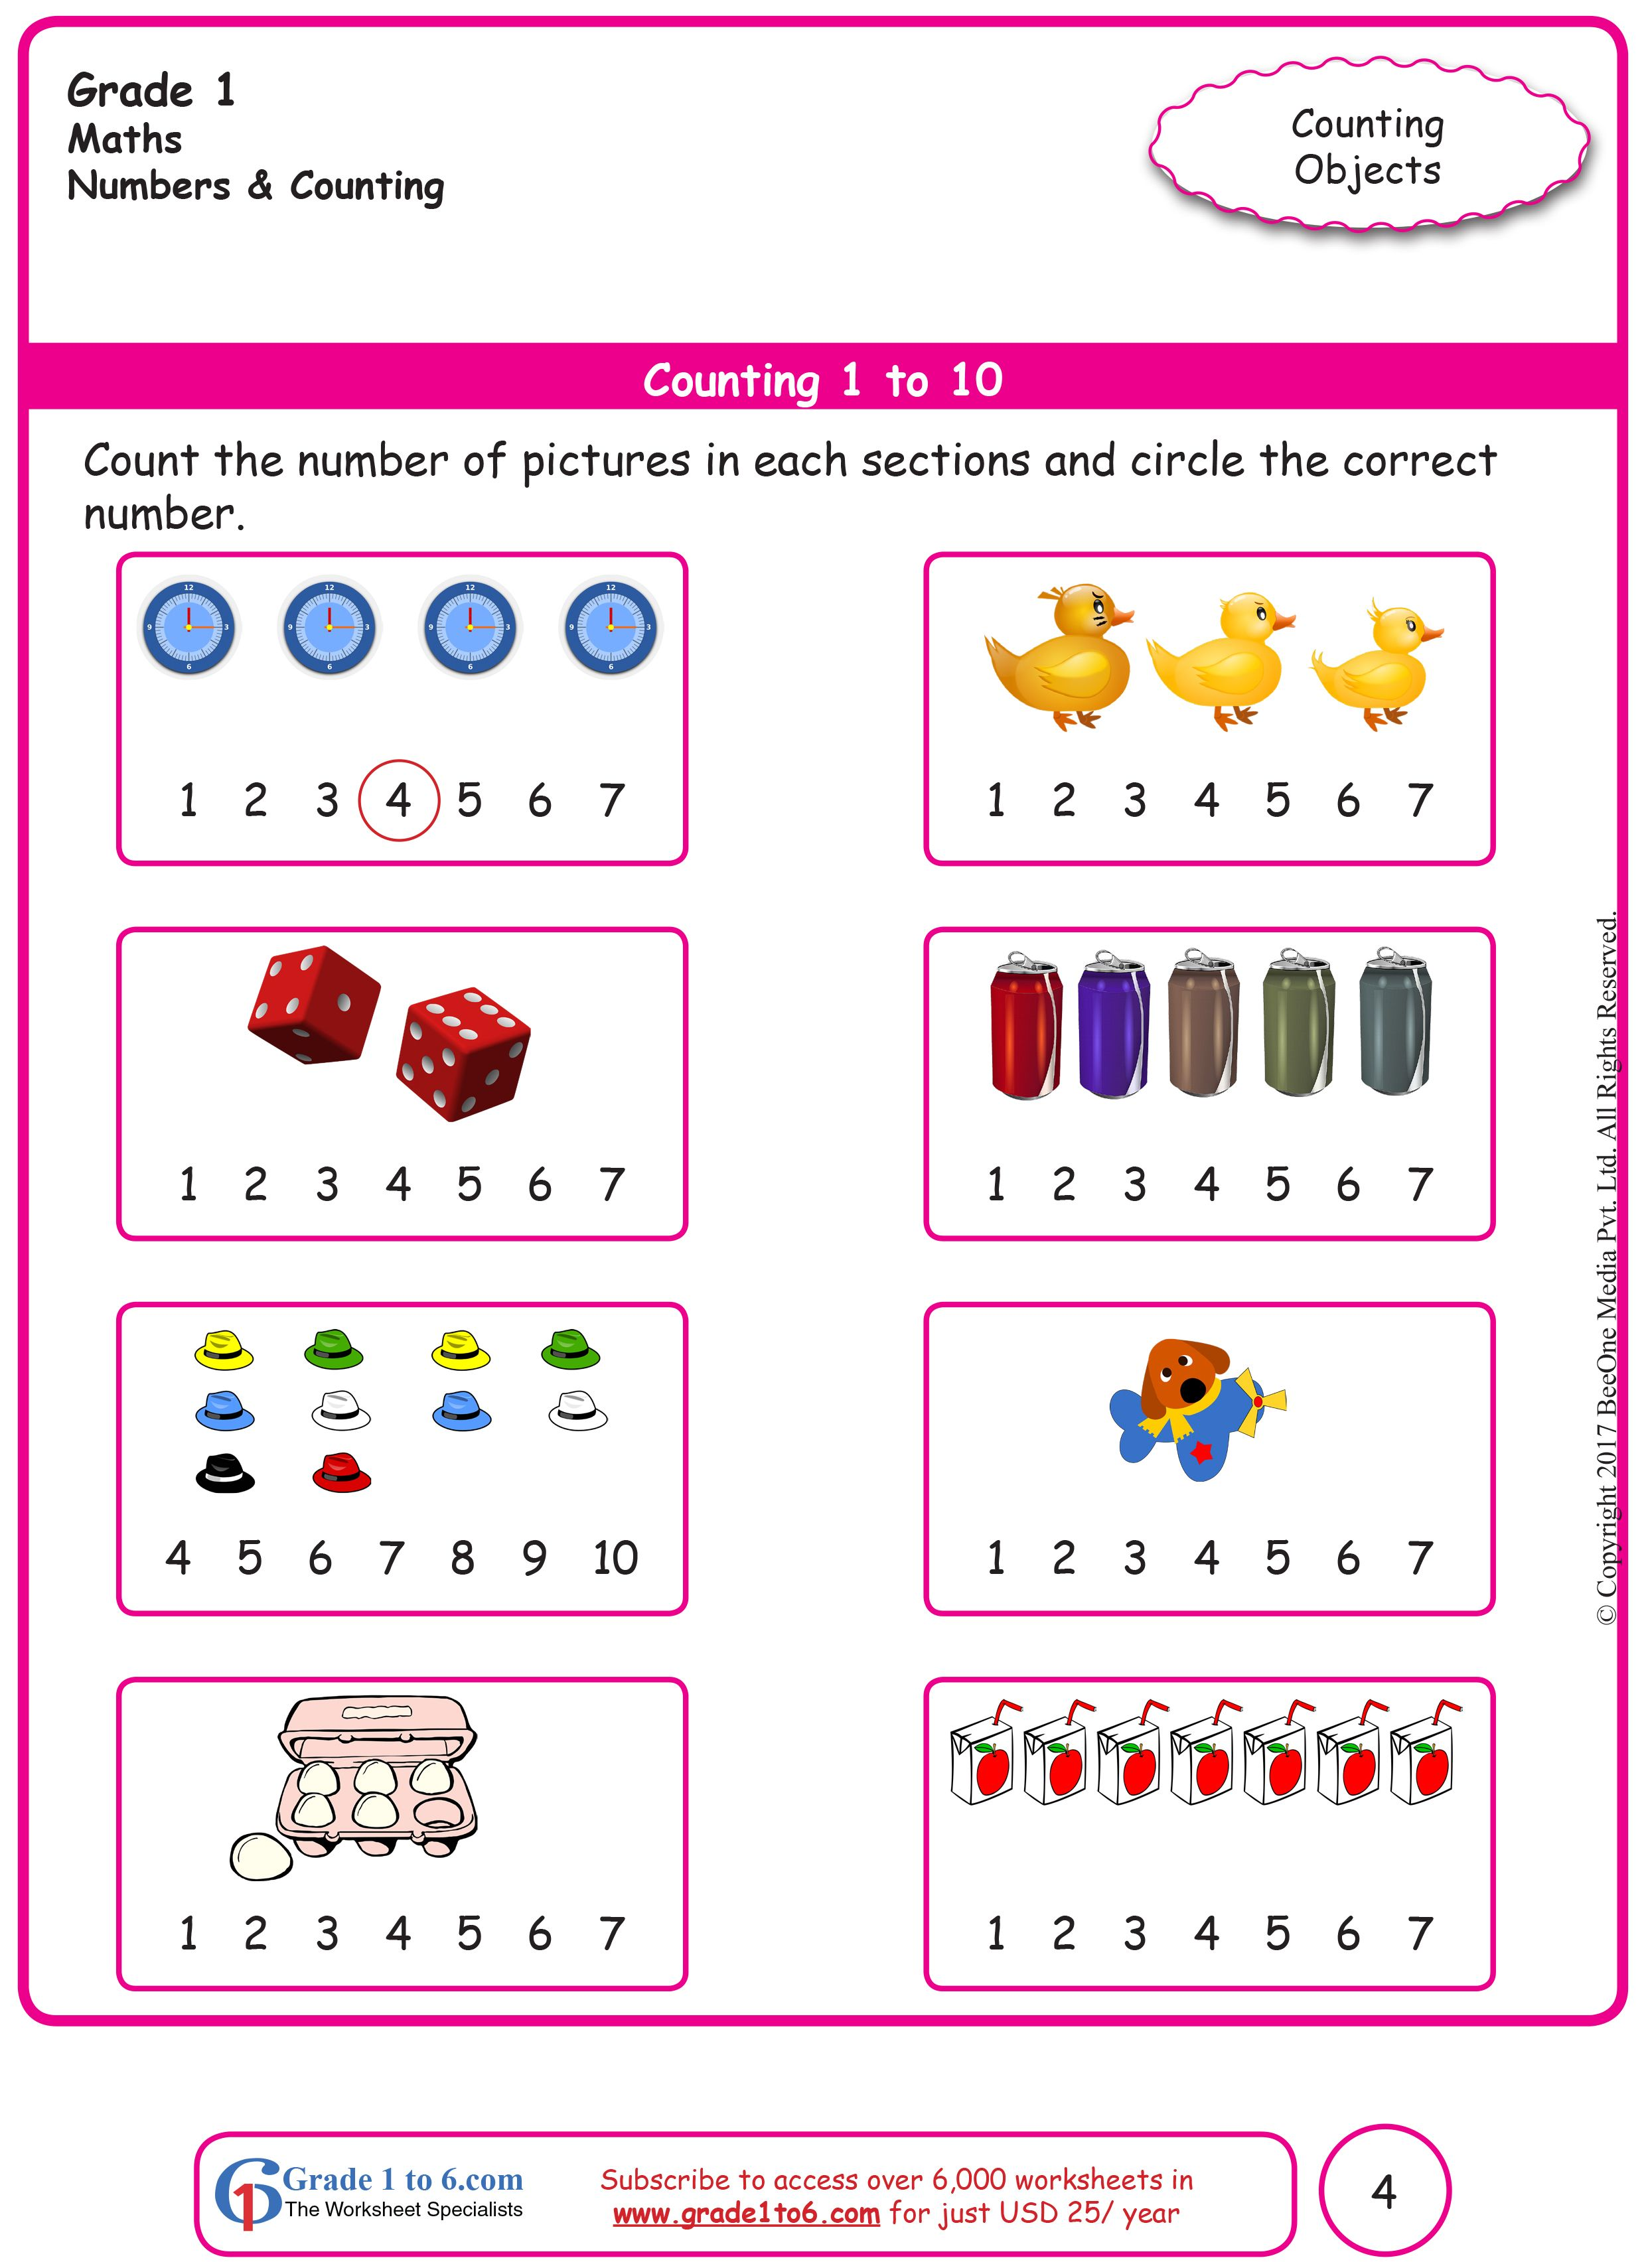 medium resolution of Counting Objects Worksheets Grade 1 Math   Kids math worksheets